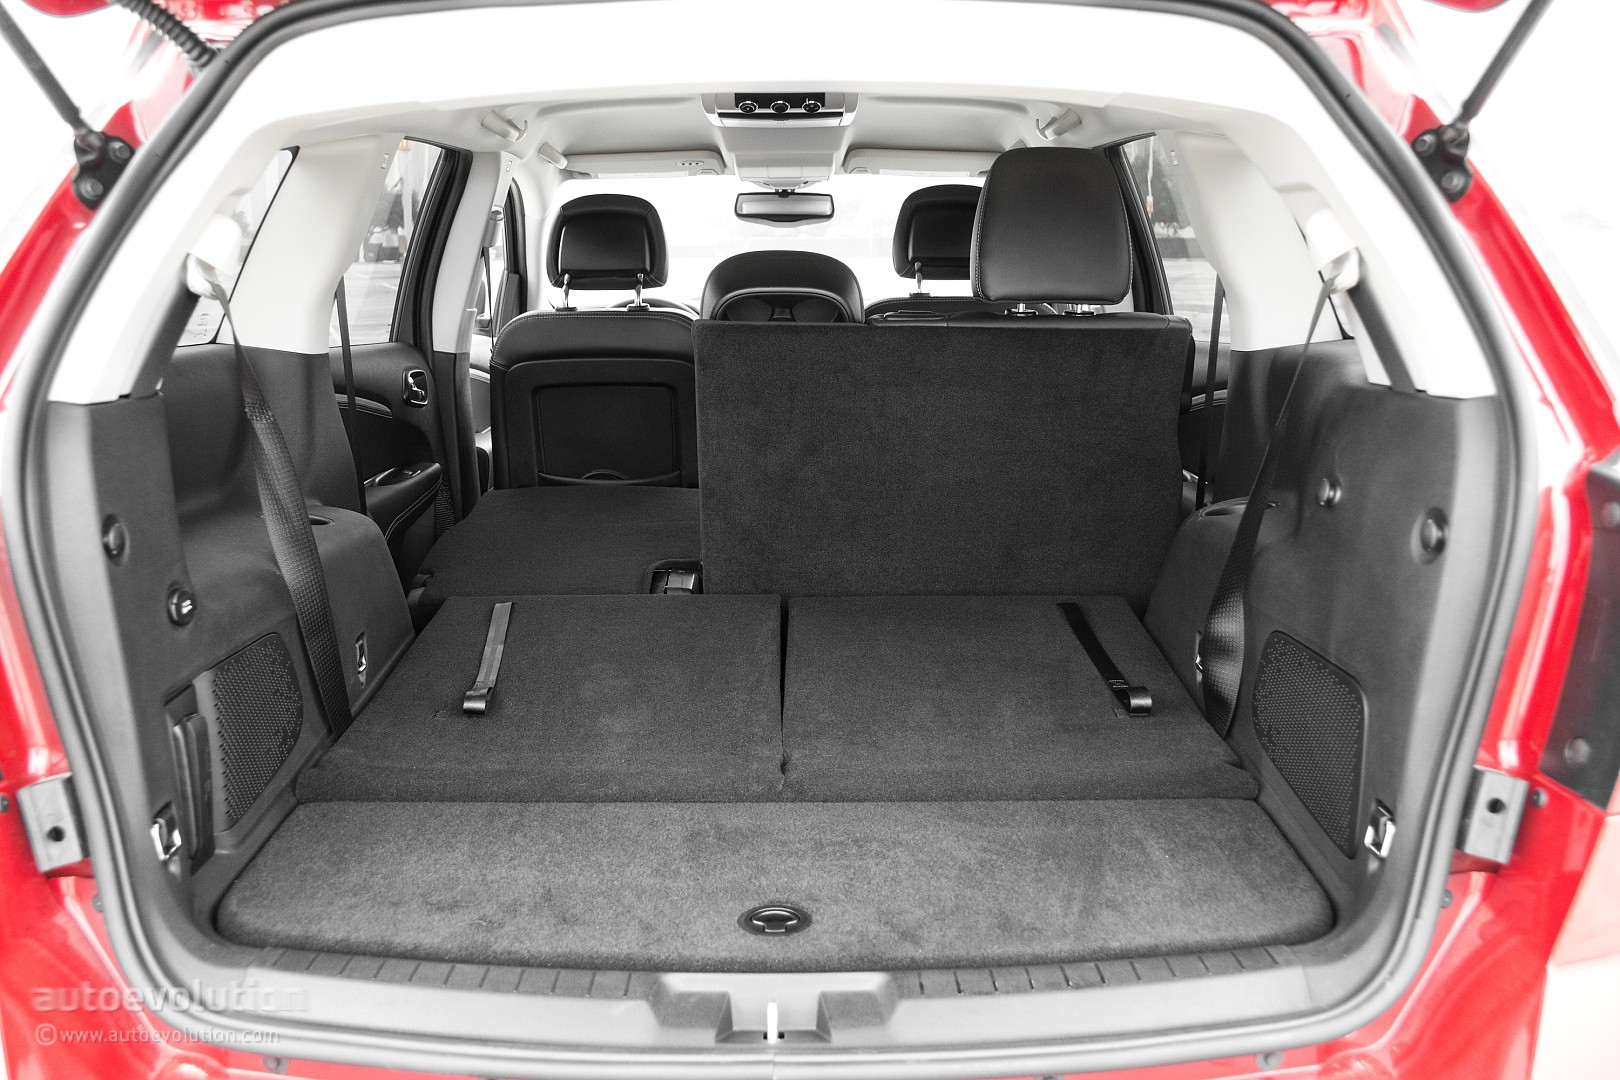 Dodge Journey Review on 2010 Dodge Journey Interior